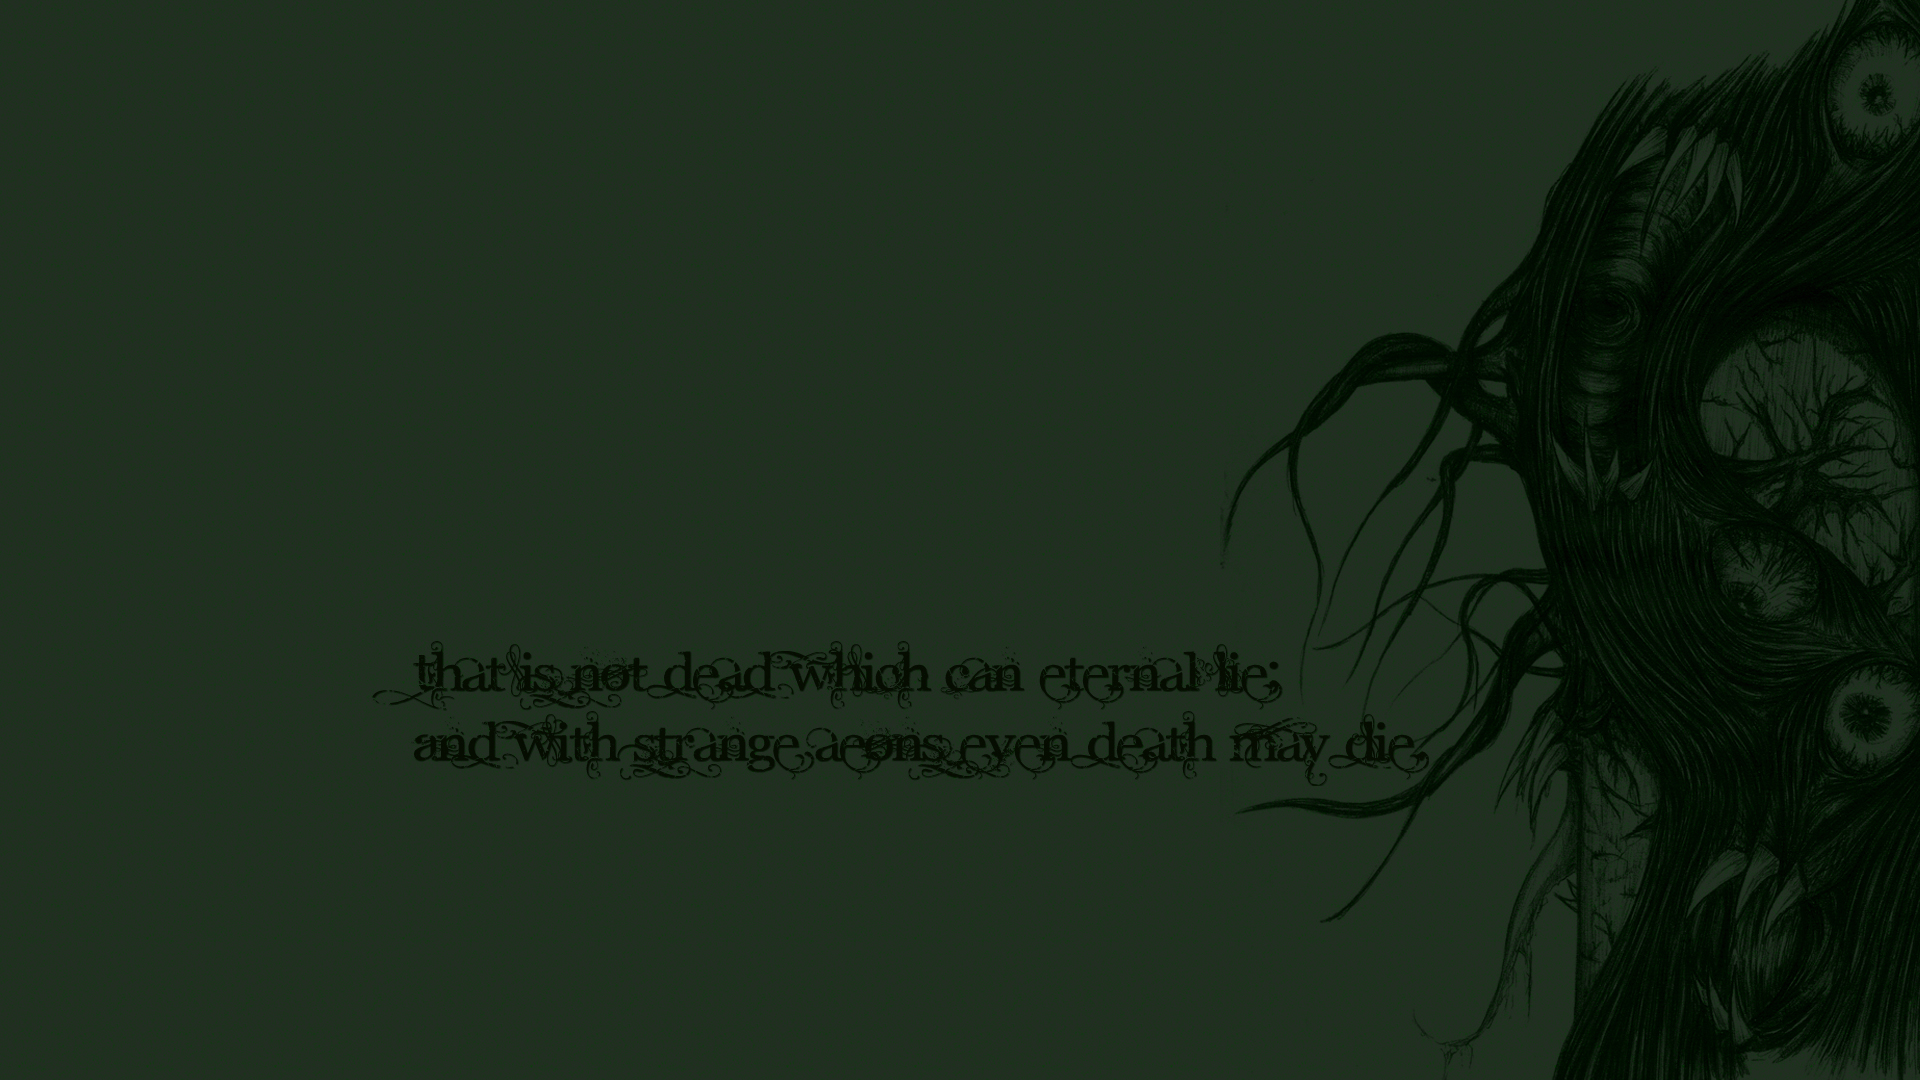 75 Lovecraft Wallpapers On Wallpapersafari